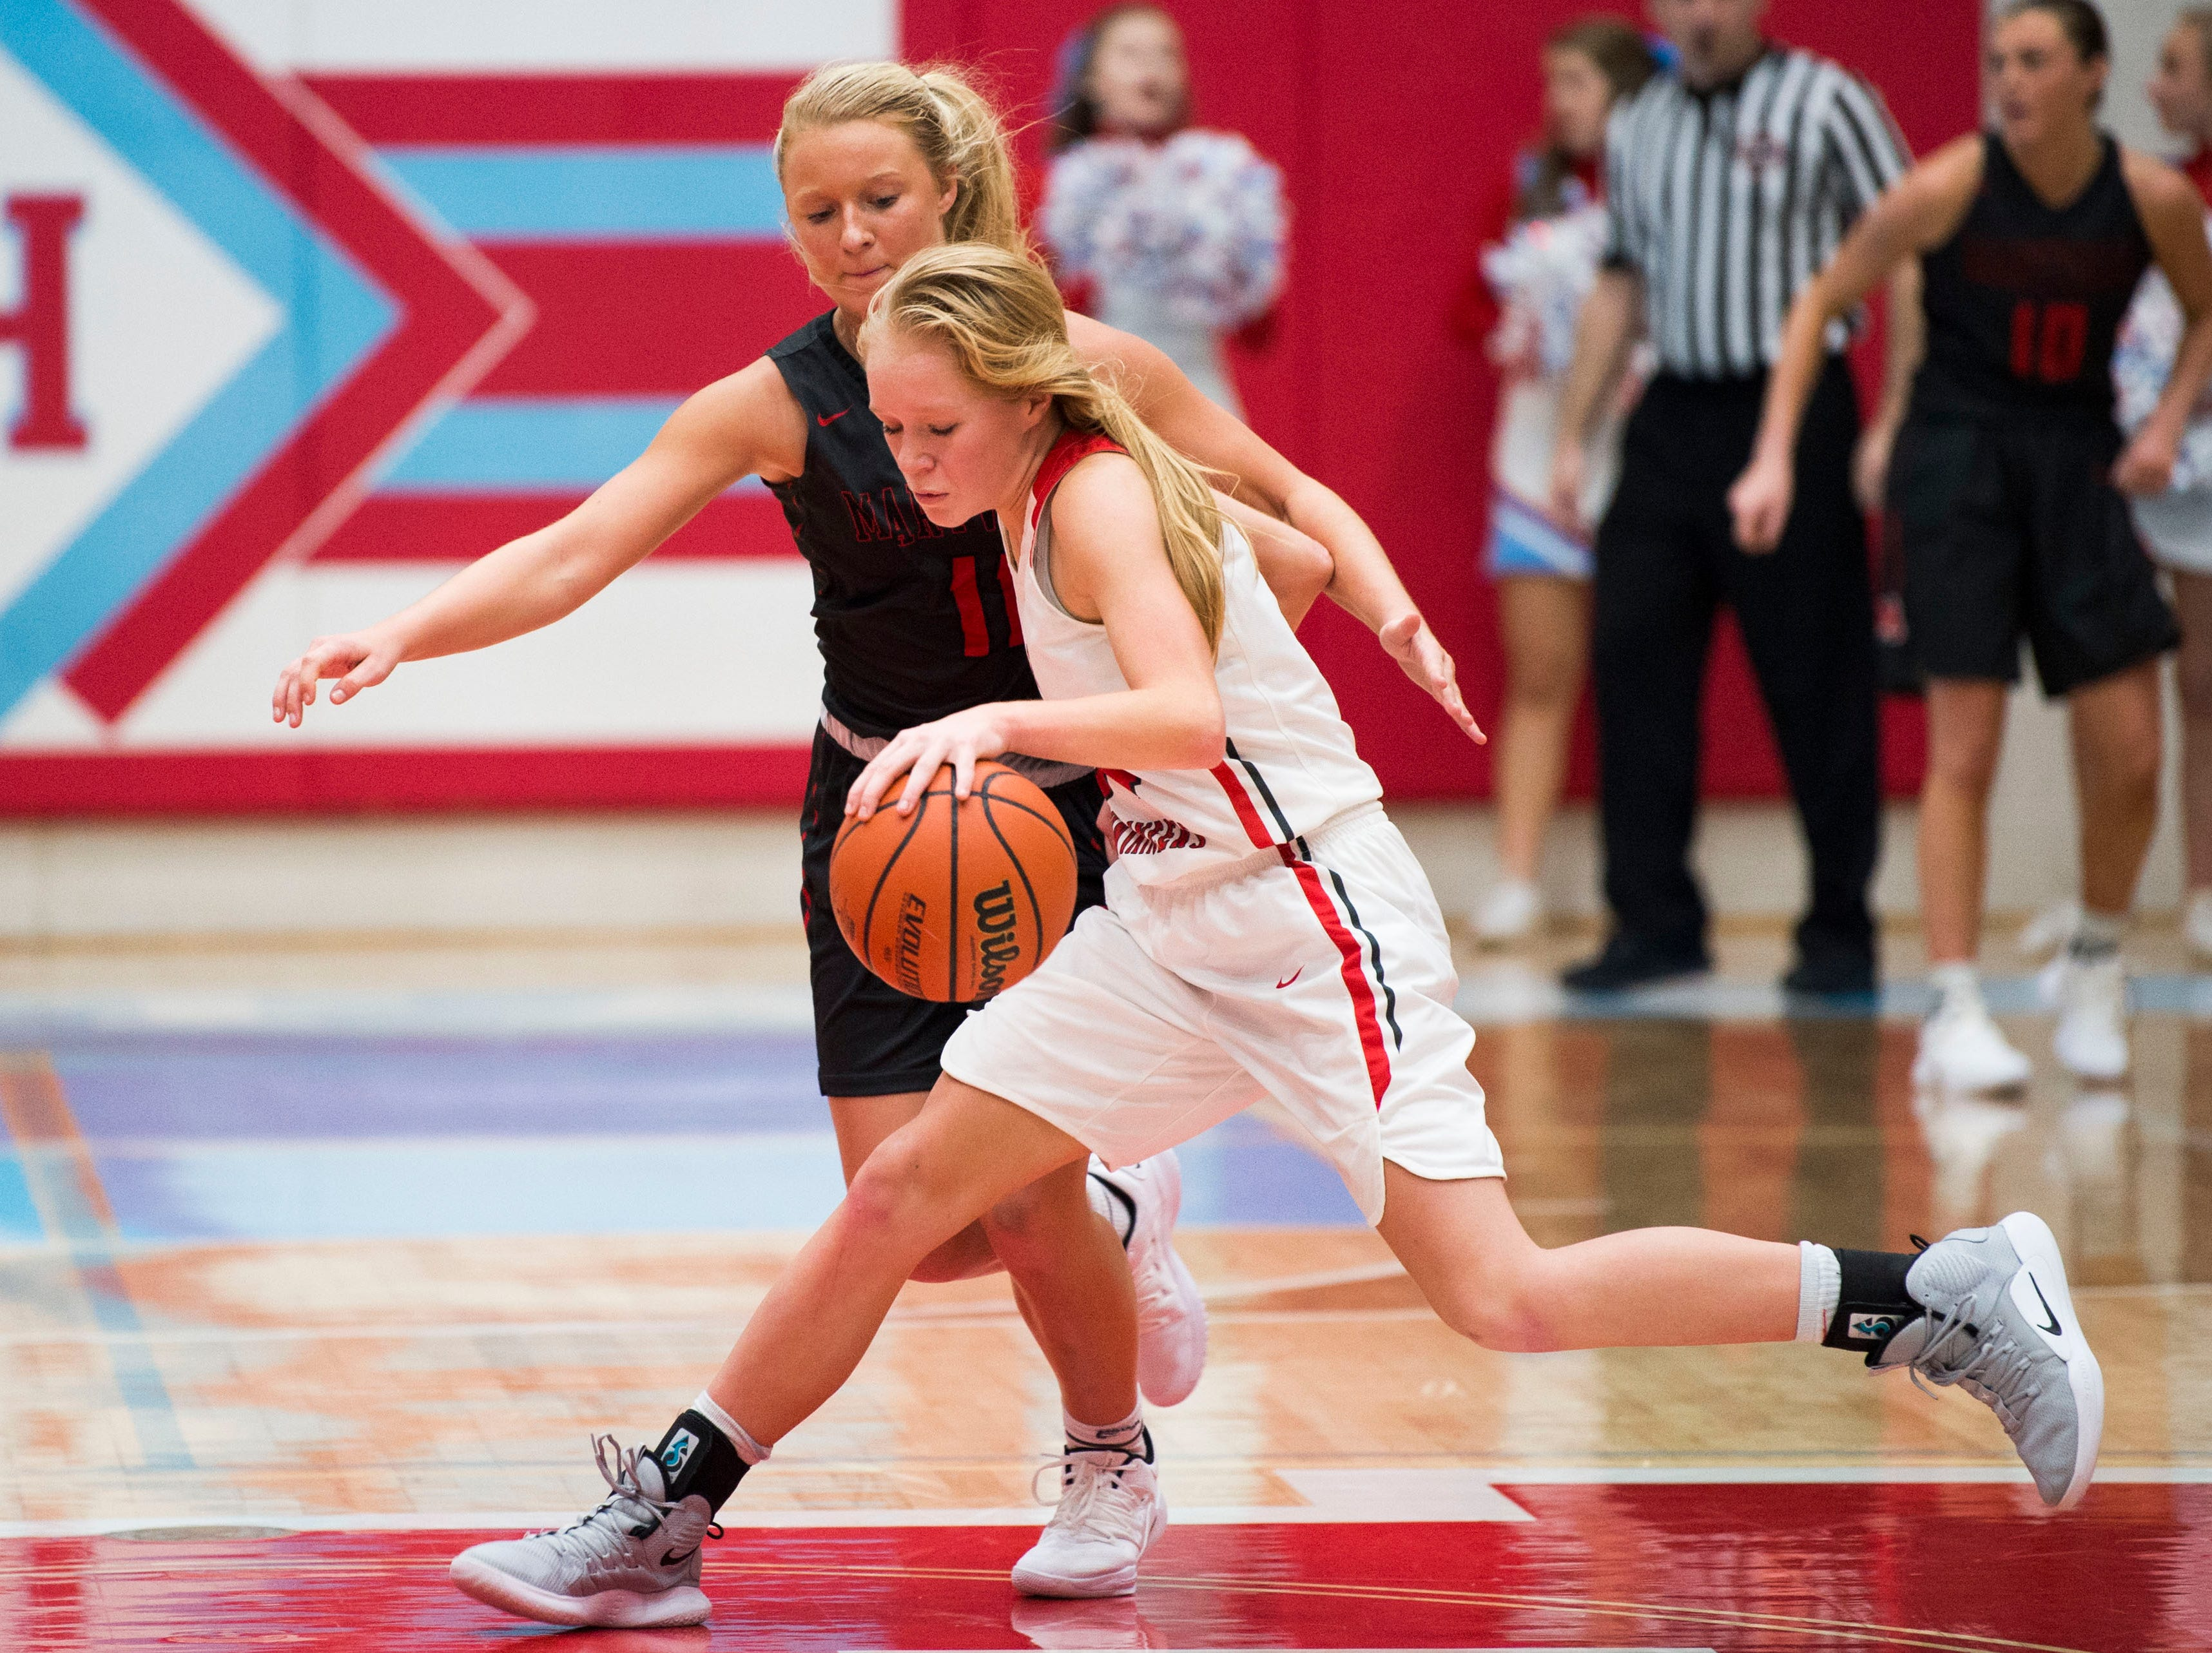 Heritage's Lexi Patty (34) dribbles the ball while defended by Maryville's Courtney Carruthers (11) during a high school basketball game between Maryville and Heritage at Heritage Friday, Jan. 4, 2019. Both Maryville boys and girls teams beat Heritage.